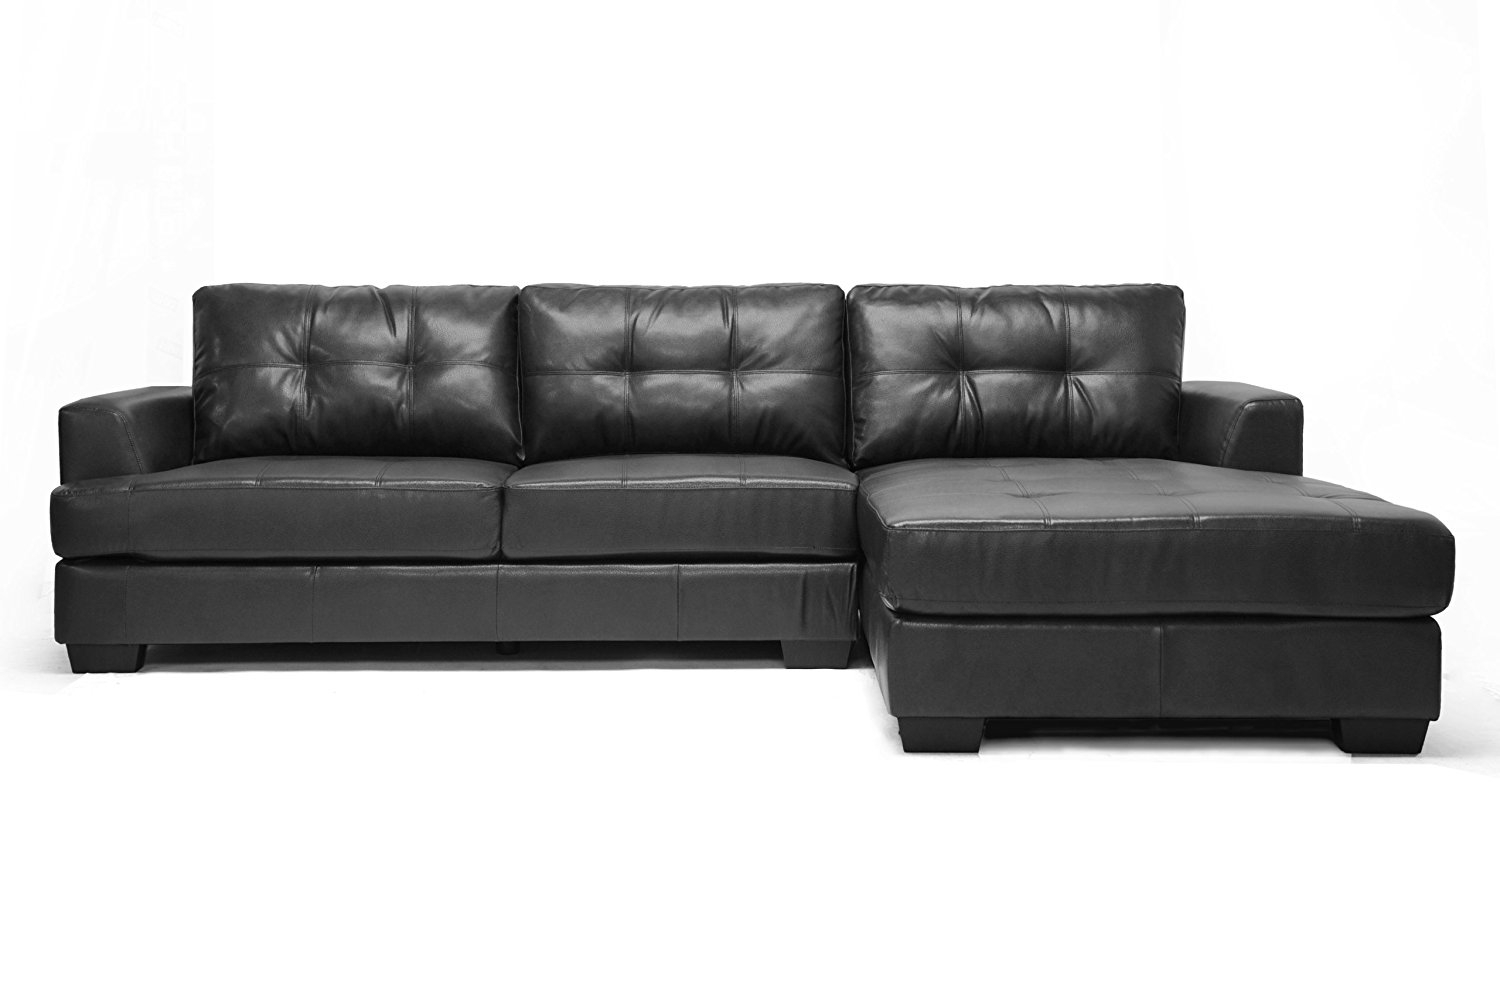 Contemporary Black Leather Sectional Sofa Left Side Chaise In Contemporary Black Leather Sectional Sofa Left Side Chaise (Image 4 of 15)